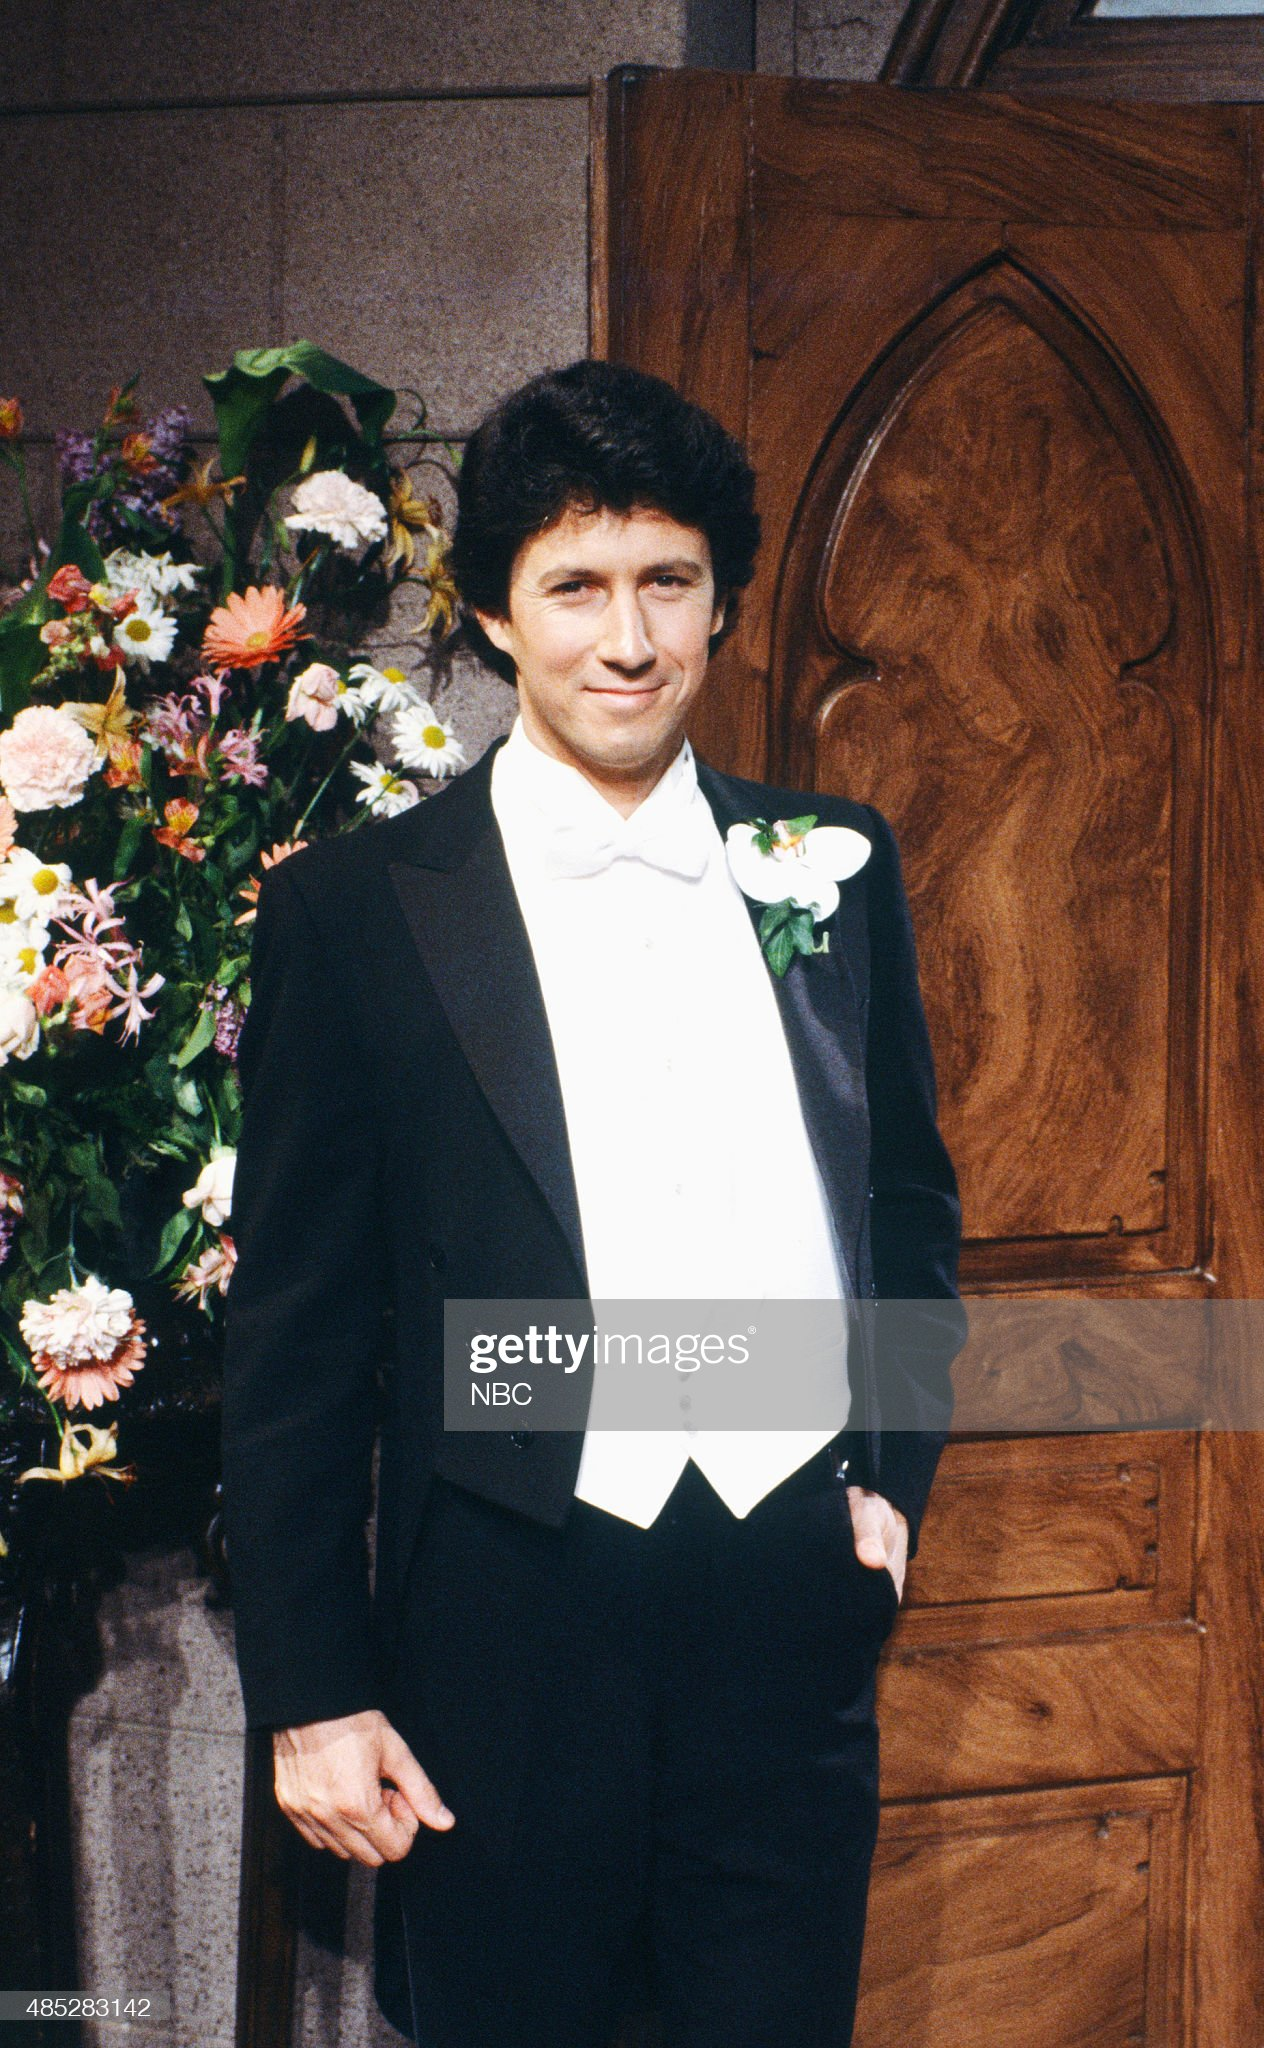 kimberly-brady-shane-donovan-wedding-pictured-charles-shaughnessy-as-picture-id485283142